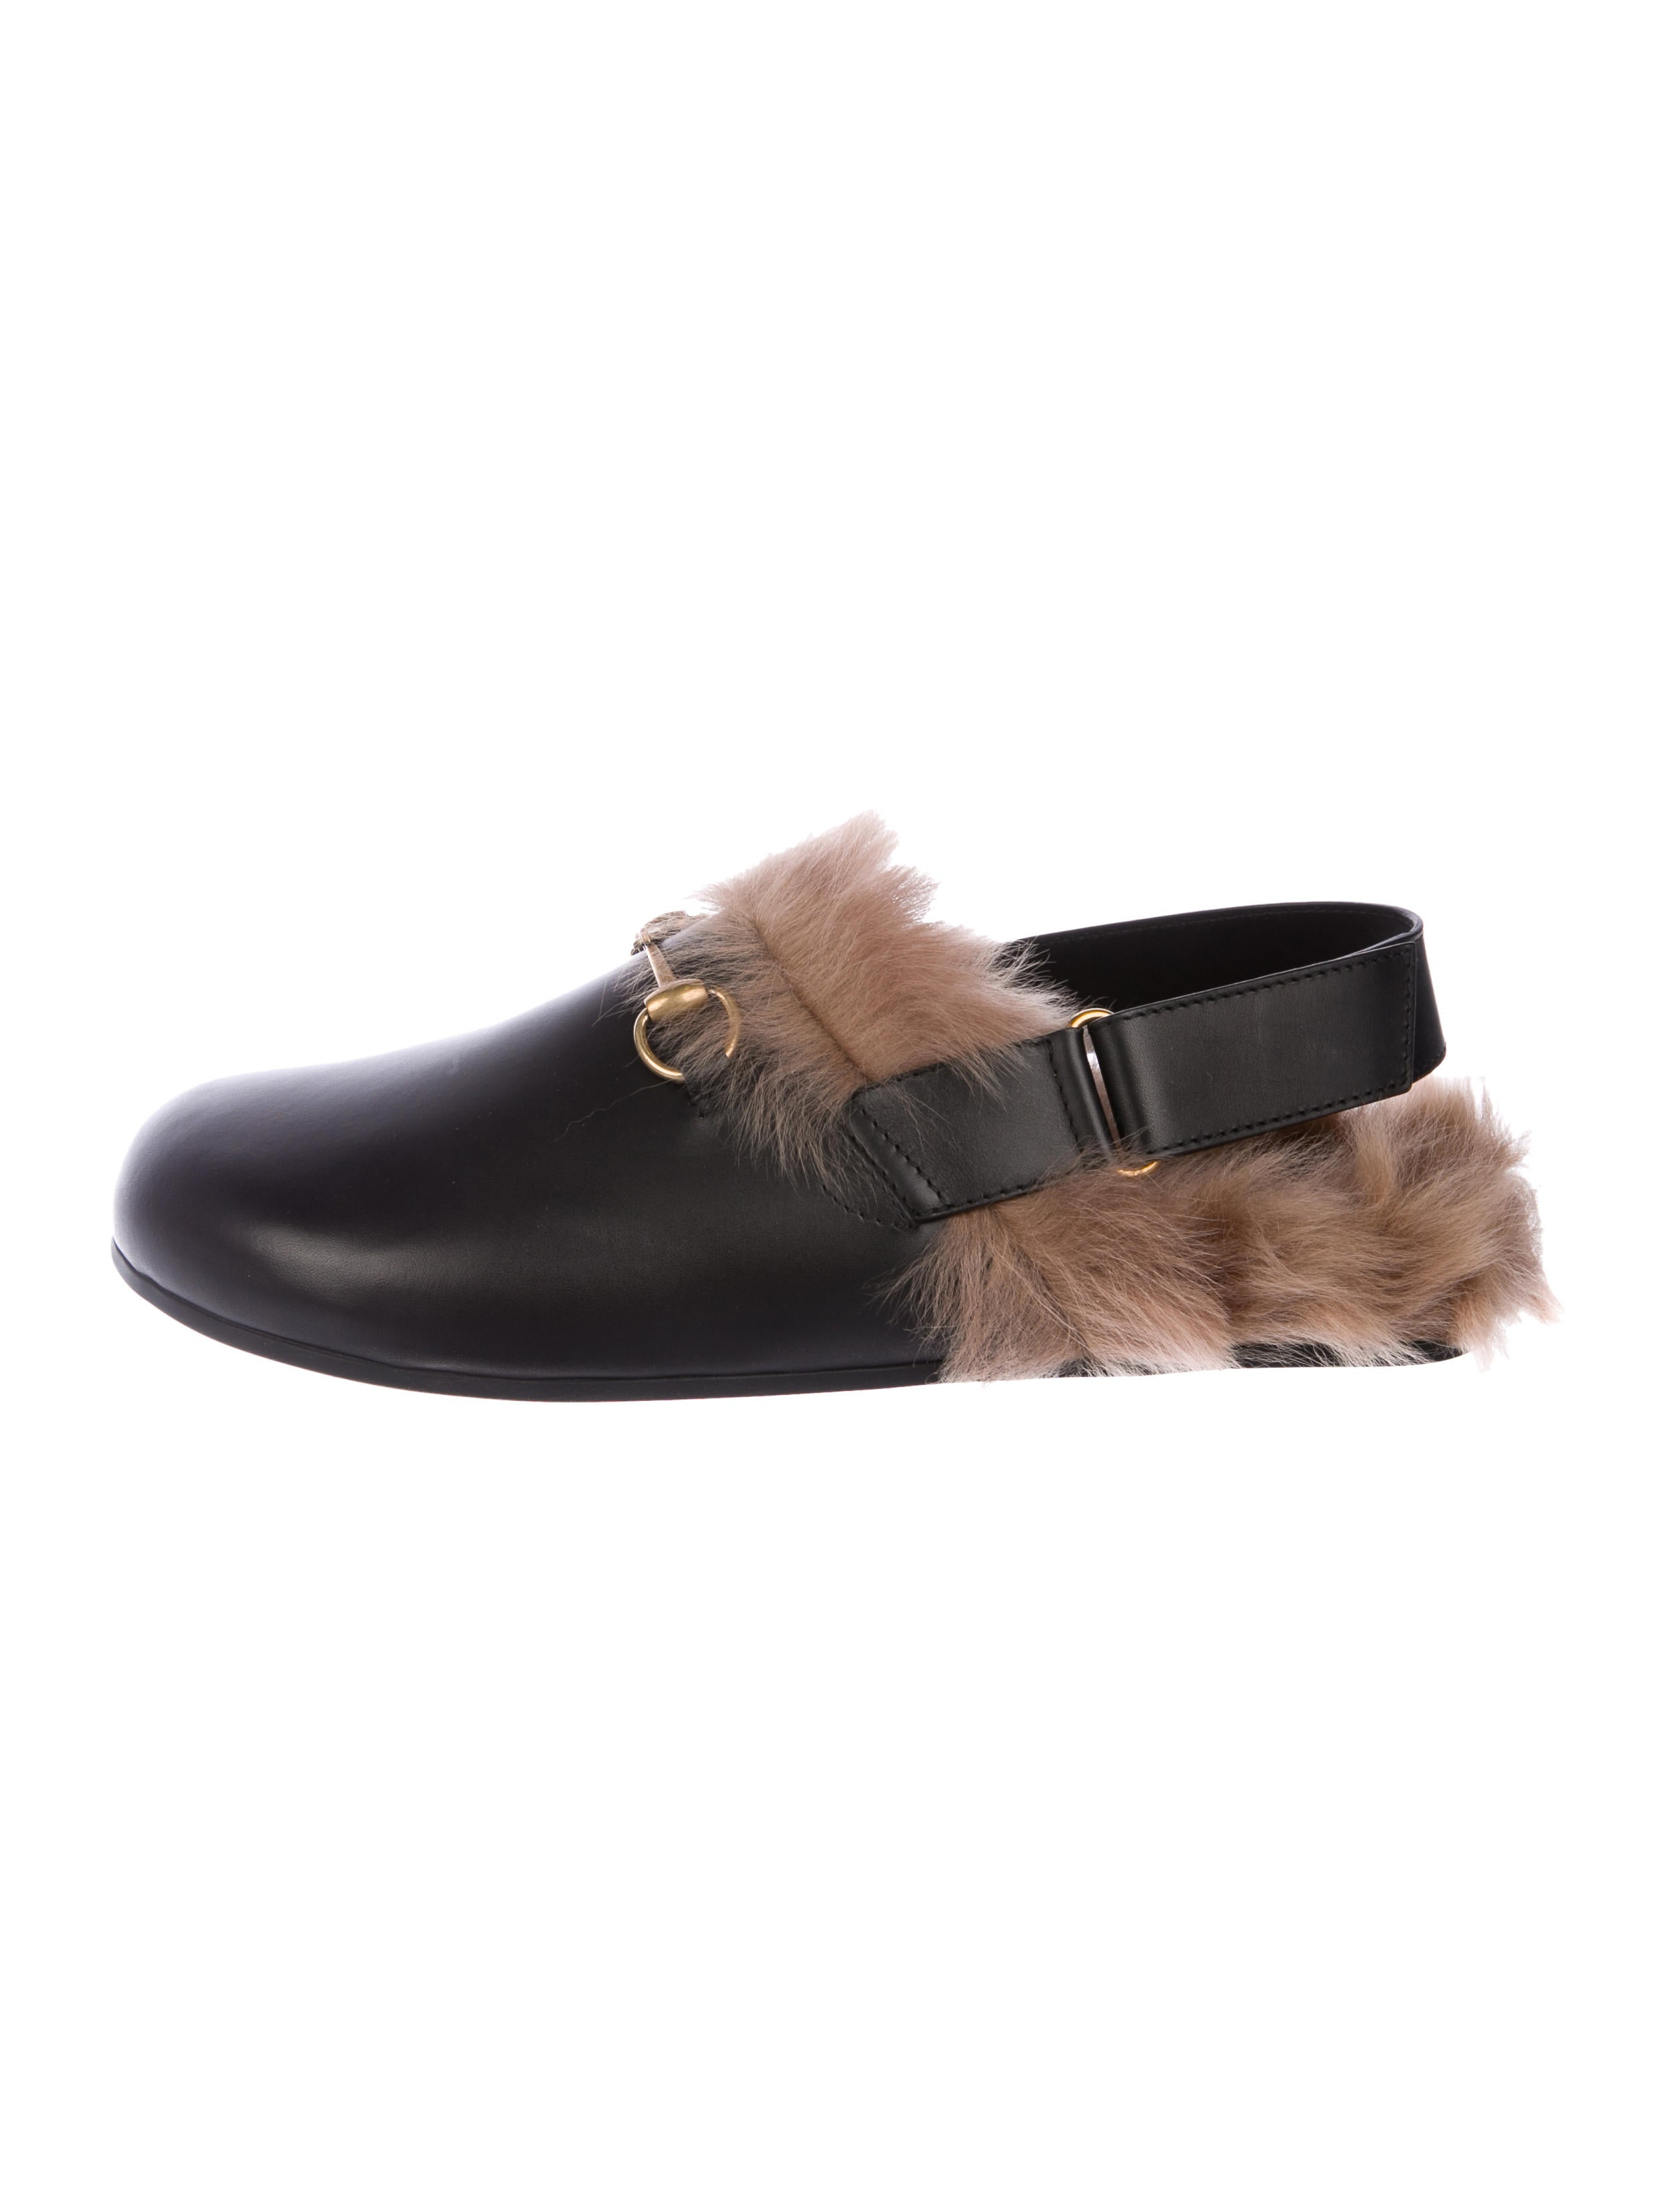 556a05fba Gucci Leather Slippers w/ Tags - Shoes - GUC337674 | The RealReal